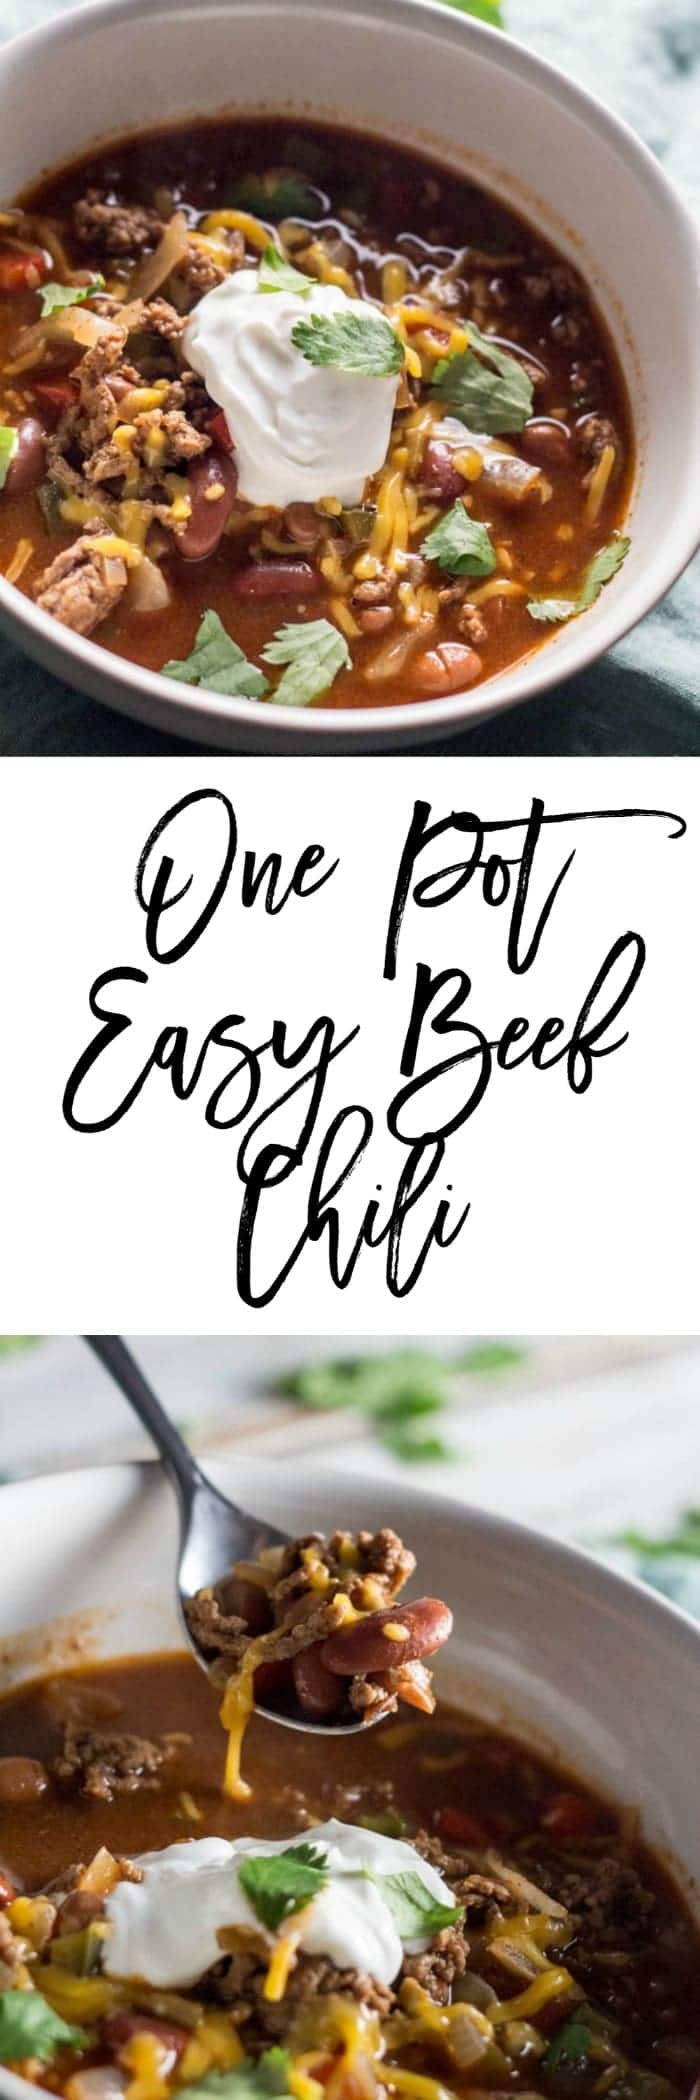 One Pot Easy Beef Chili